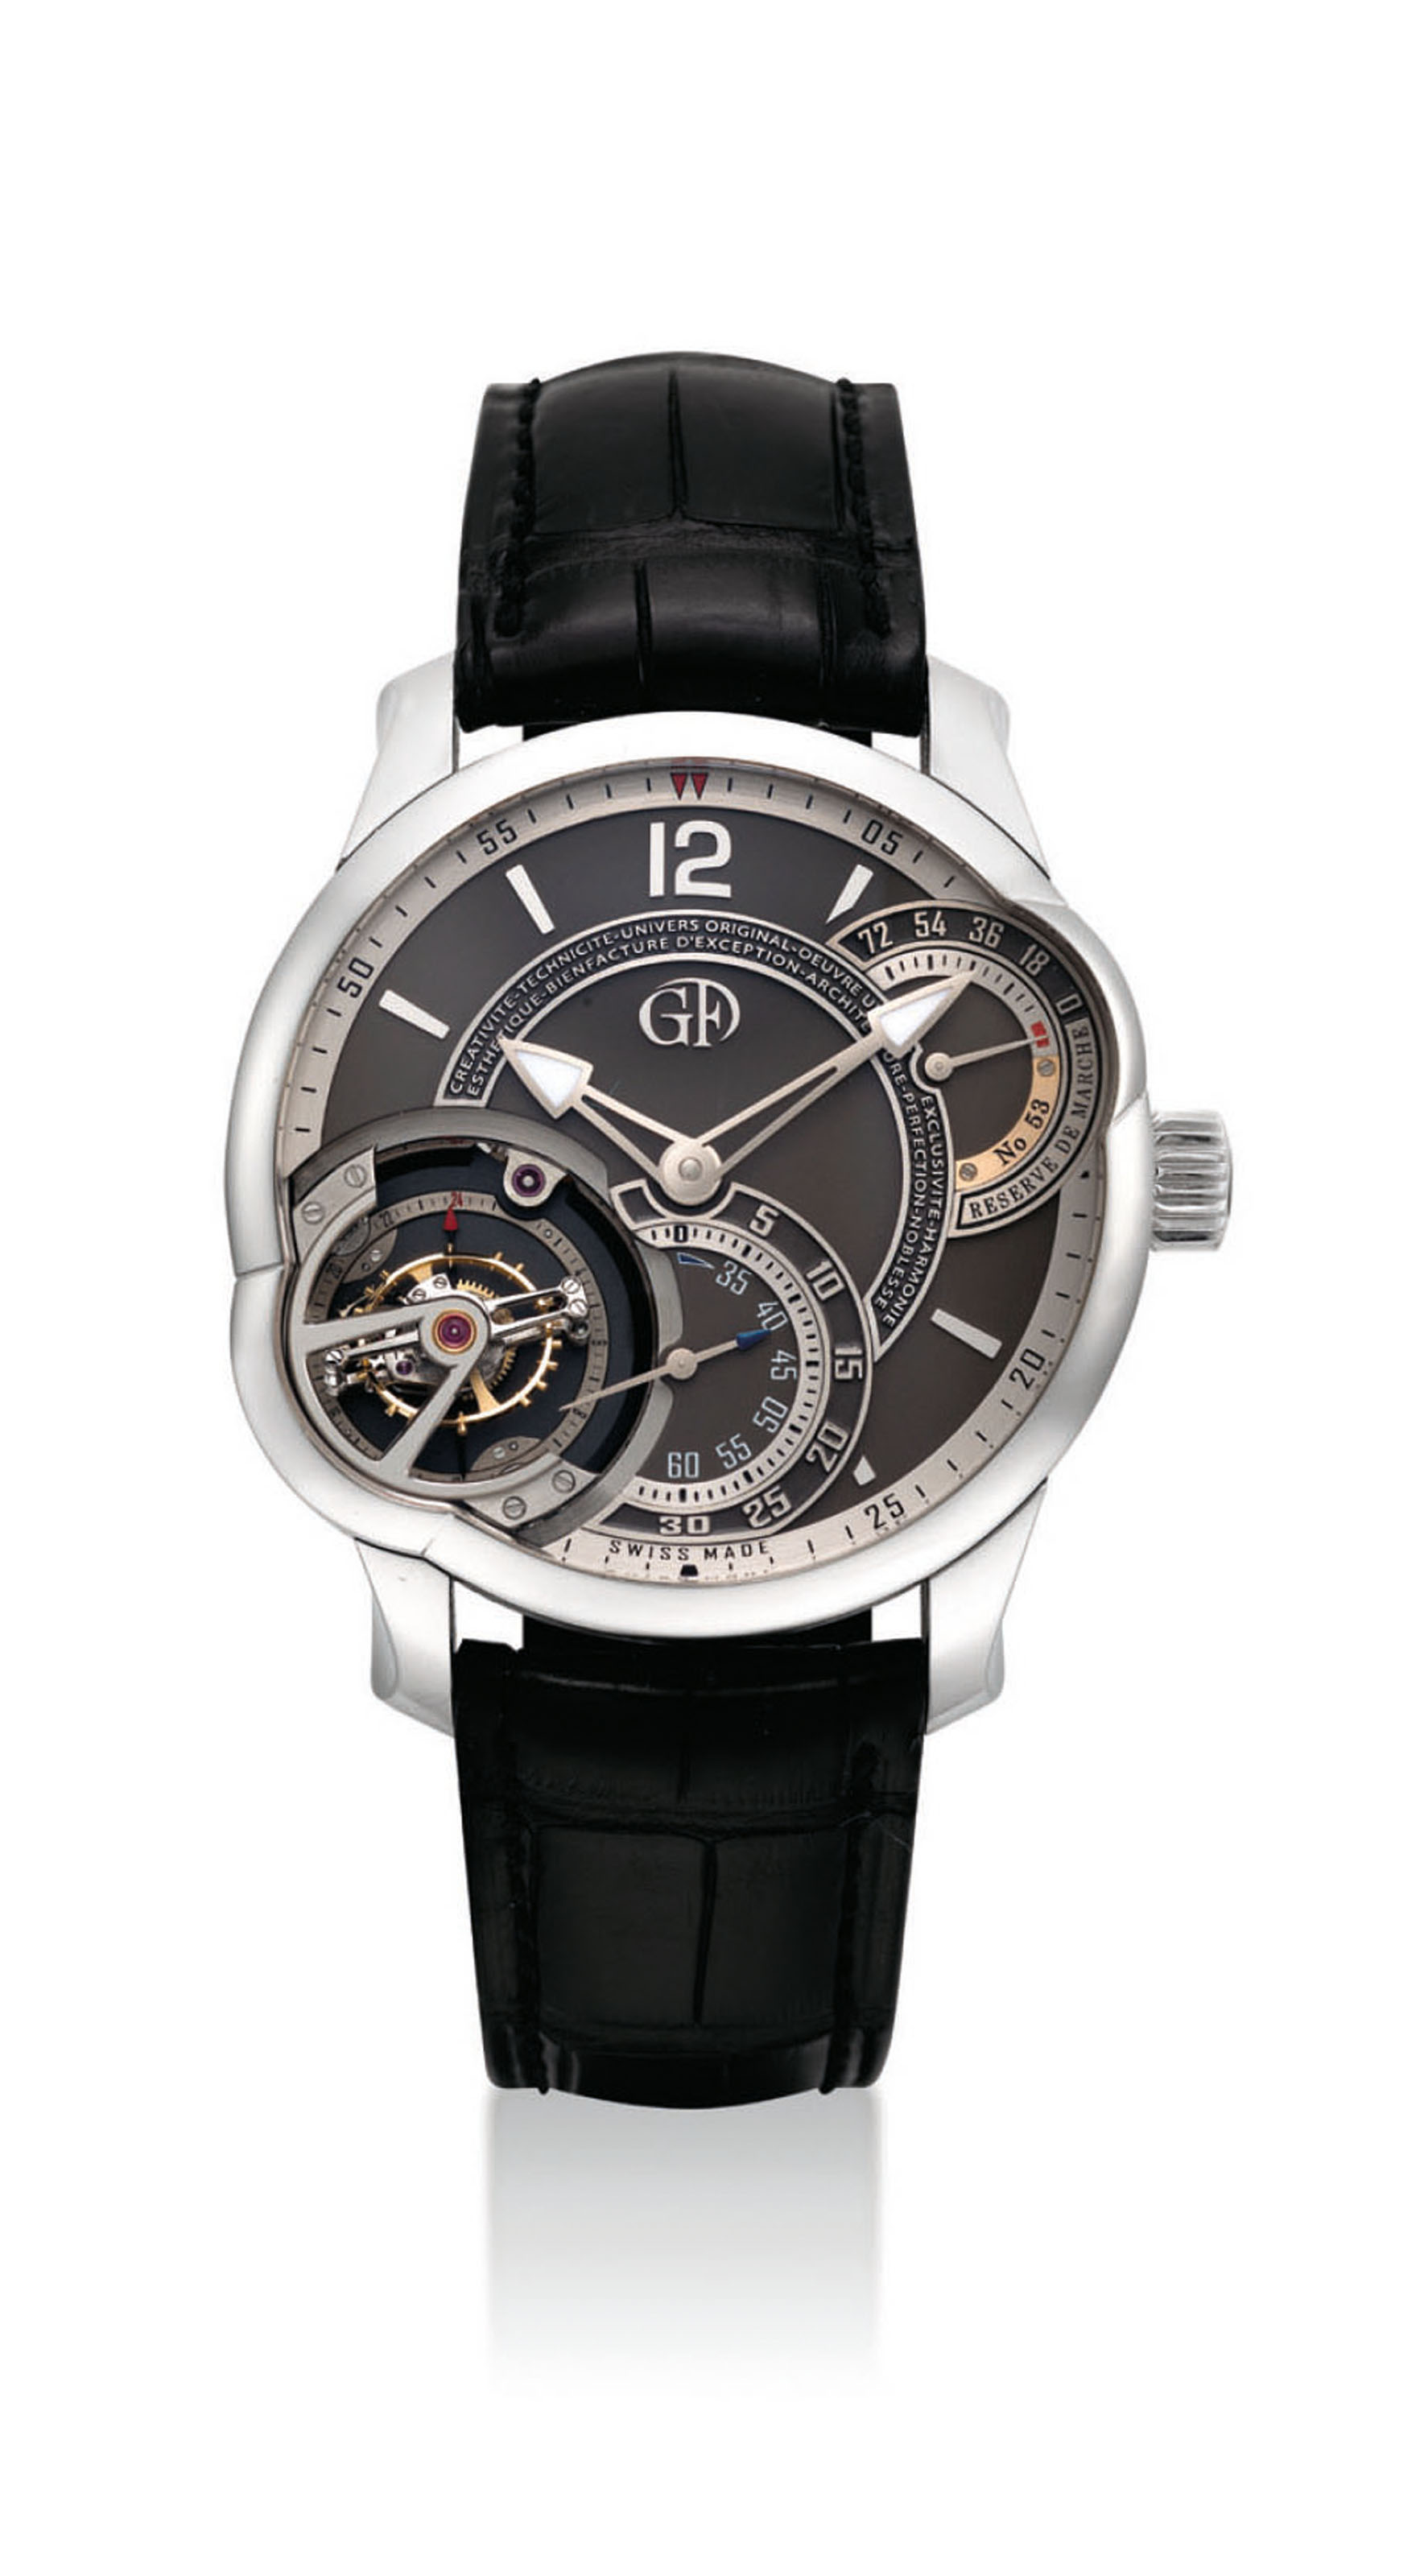 GREUBEL FORSEY. AN IMPORTANT AND VERY FINE PLATINUM ASYMMETRICAL 25° INCLINED 24 SECONDS TOURBILLON WRISTWATCH WITH 72 HOURS POWER RESERVE